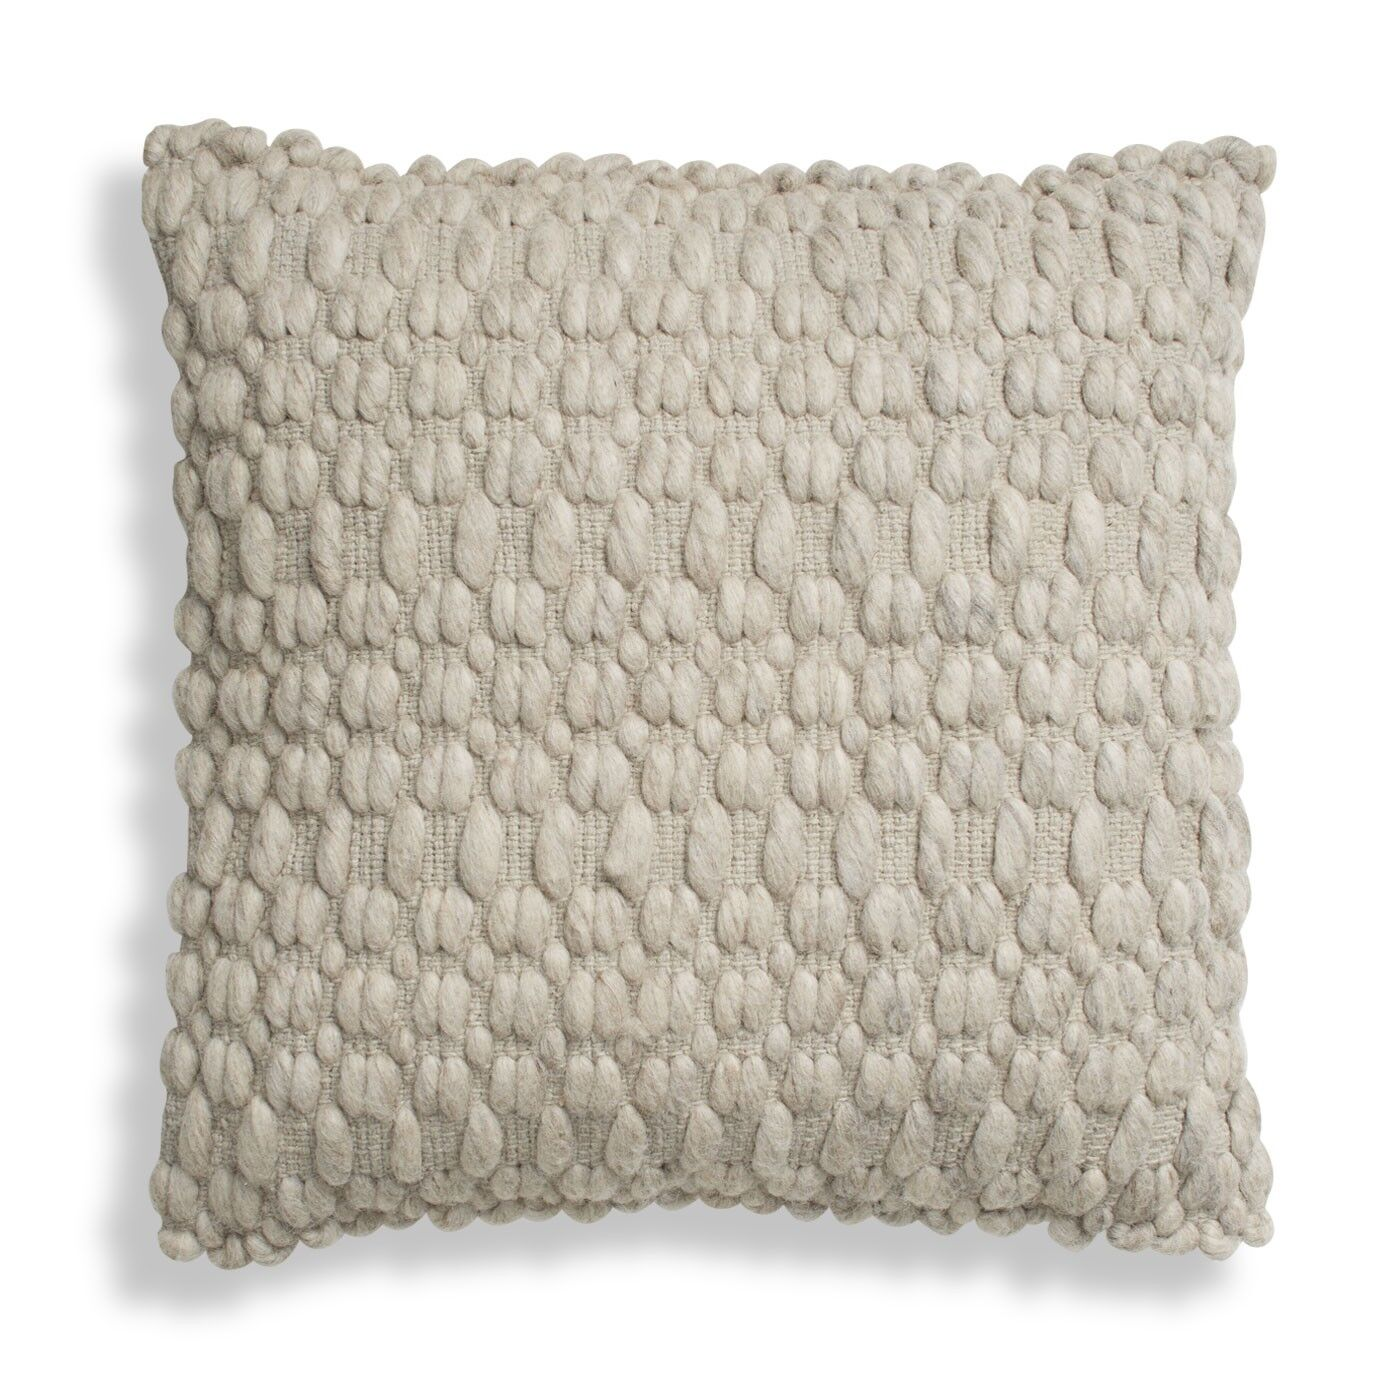 Gam Gam Pillow Color: Light Gray/Heathered Oatmeal